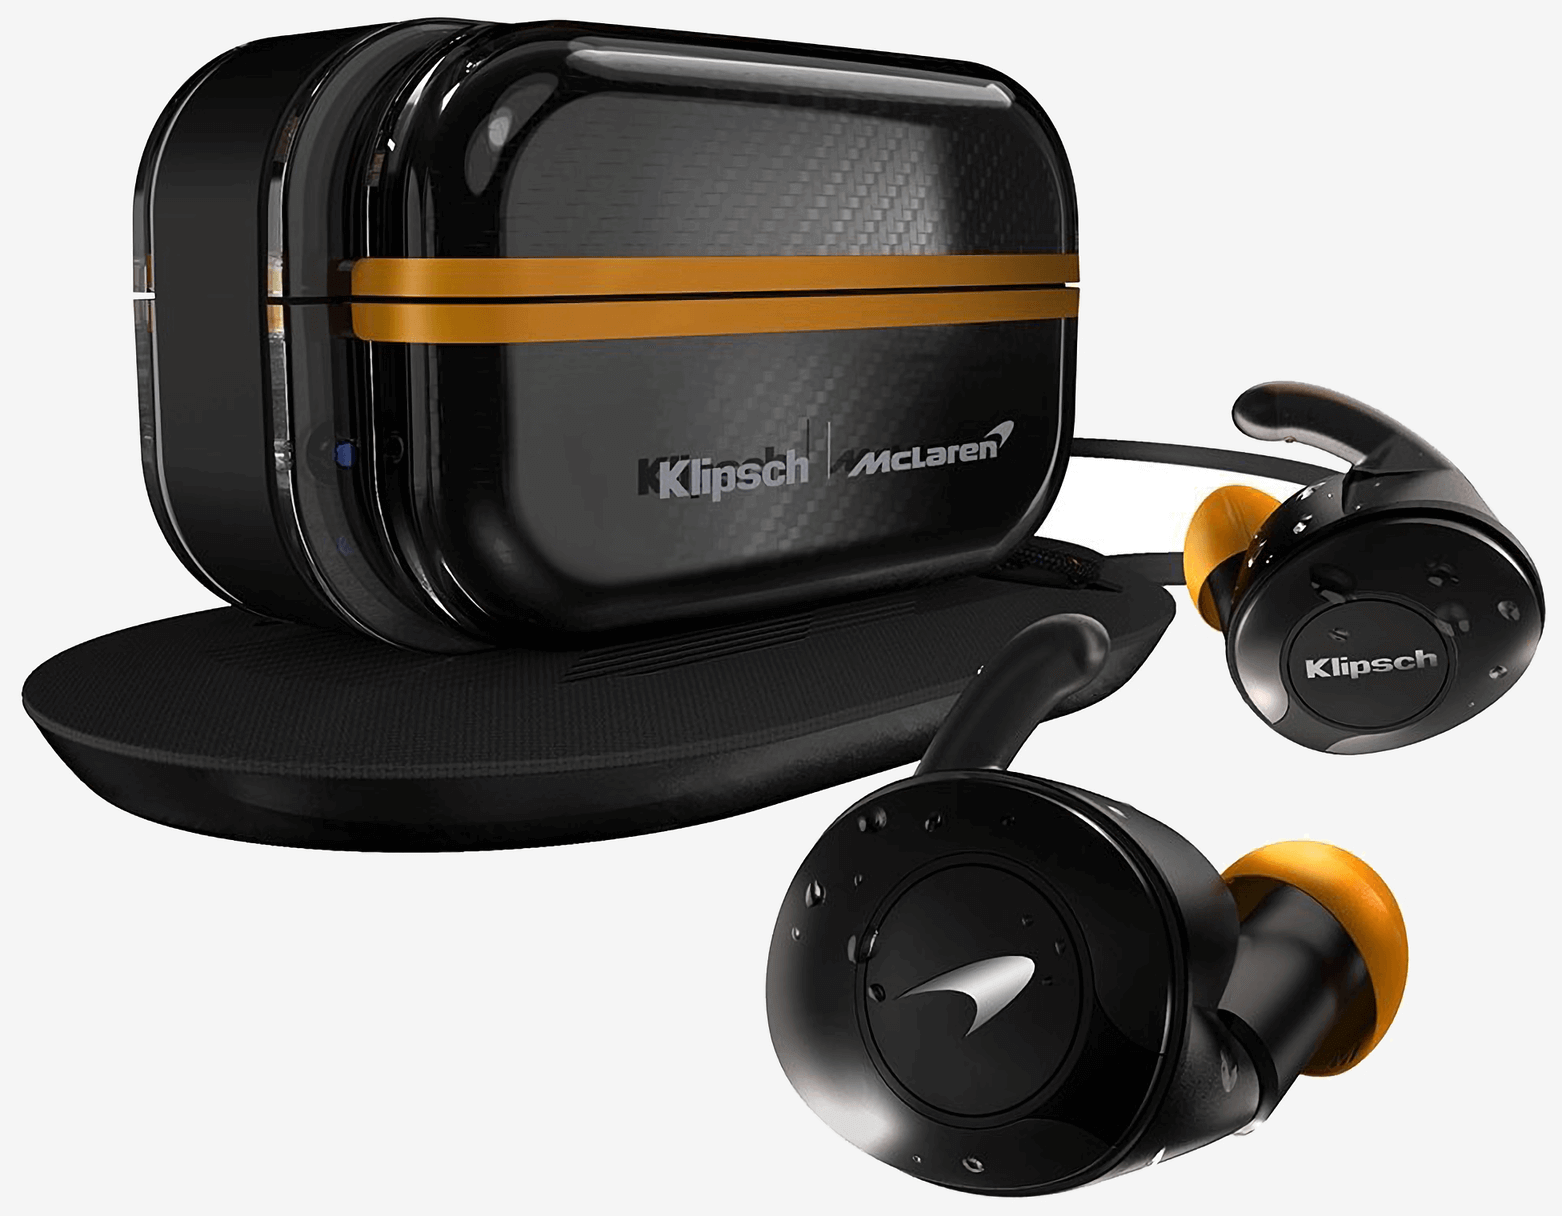 klipsch-second-gen-true-wireless-earbuds